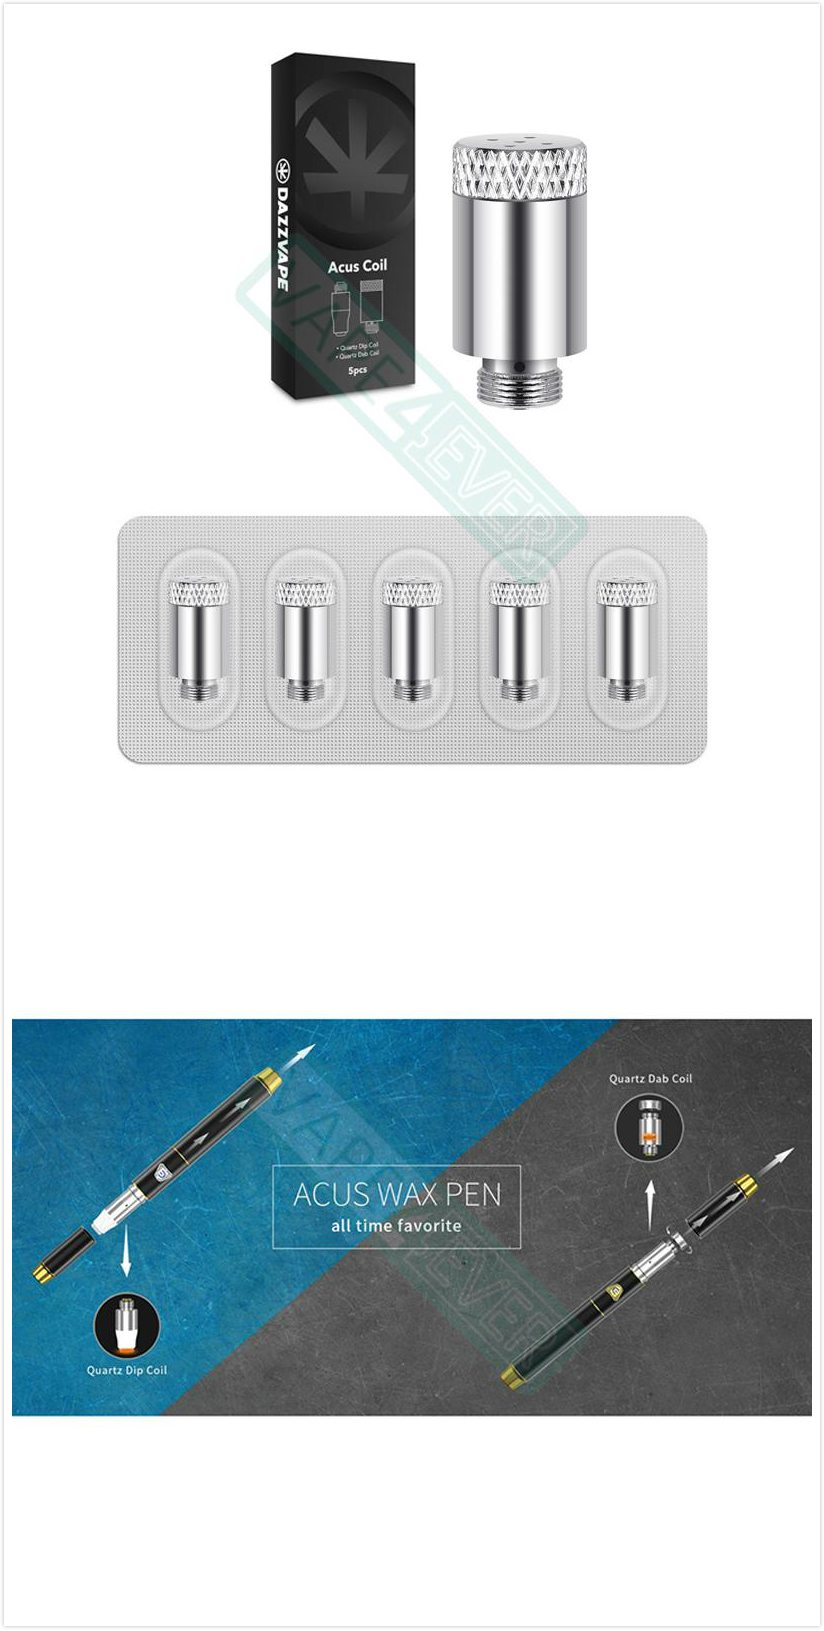 Dazzvape Acus Wax Pen Vaporizer Replacement Coil Acus Steel Dab Coil 5pcs/pack Instruction